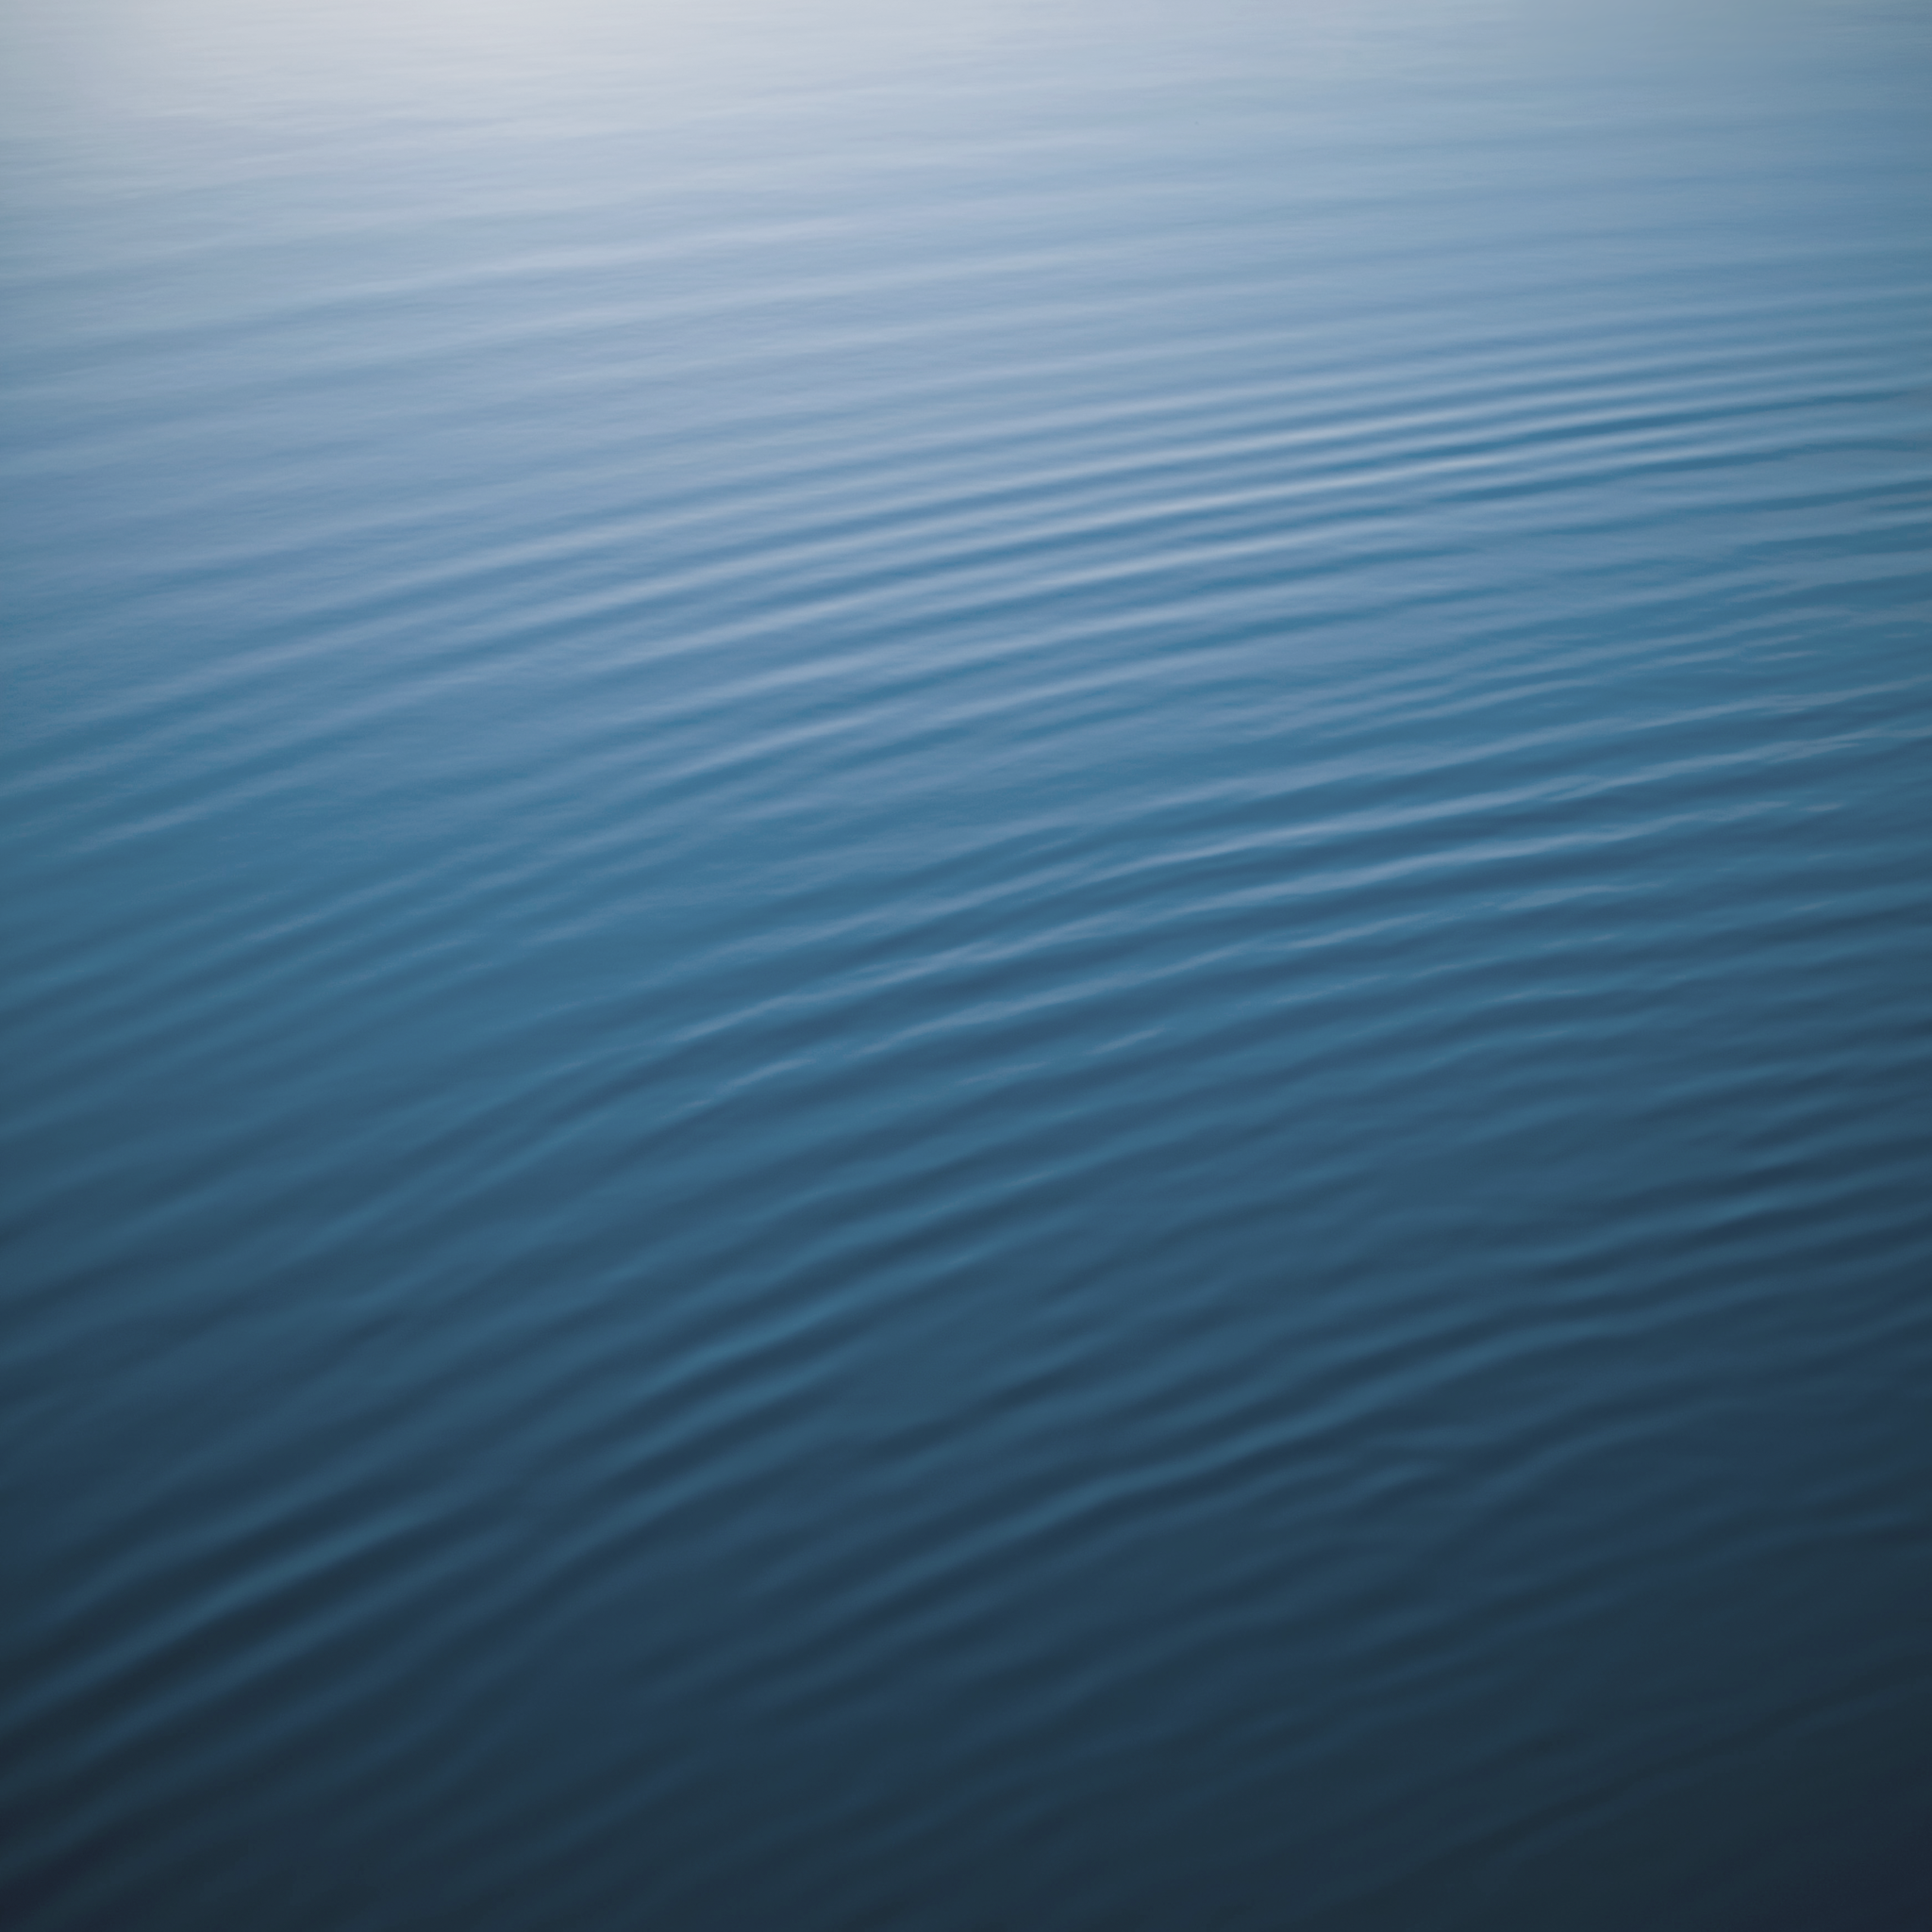 iOS 6 Get the New iOS 6 Default Wallpaper Now Rippled Water OS X 2048x2048